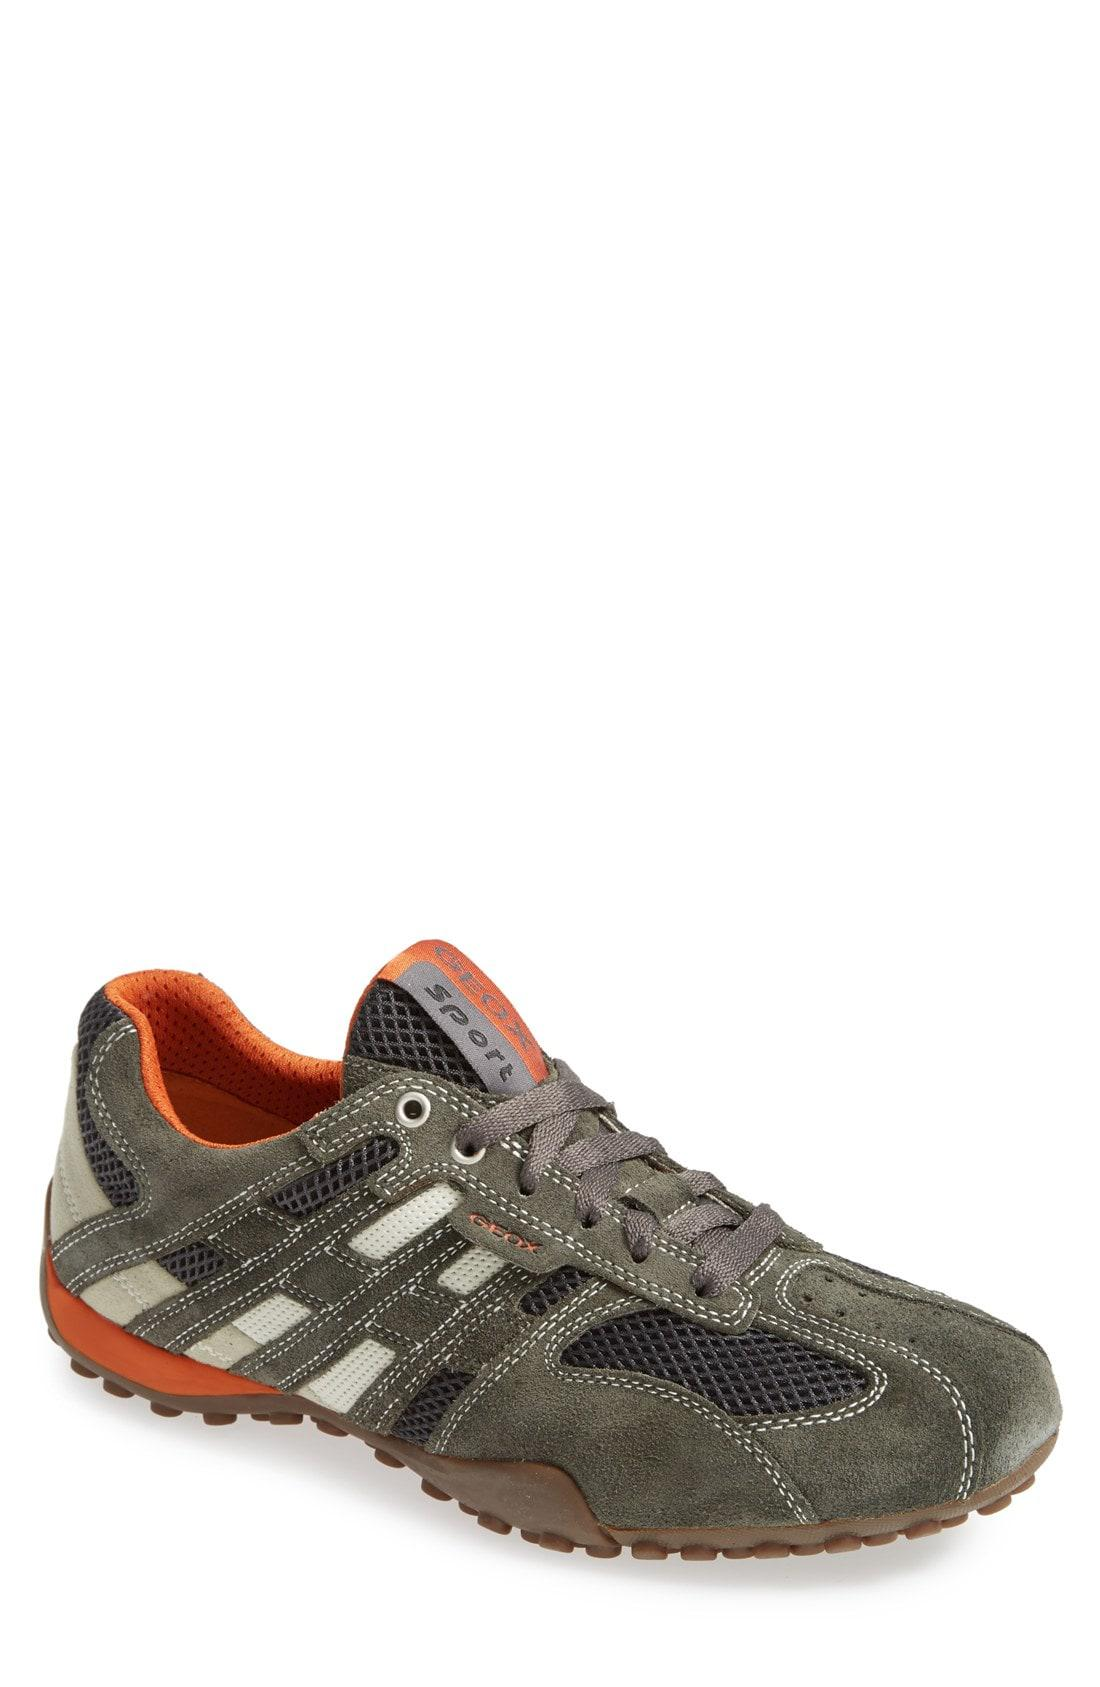 Lyst - Geox Uomo Snake 94 Sneakers in Gray for Men - Save 22% bb3496c8be1